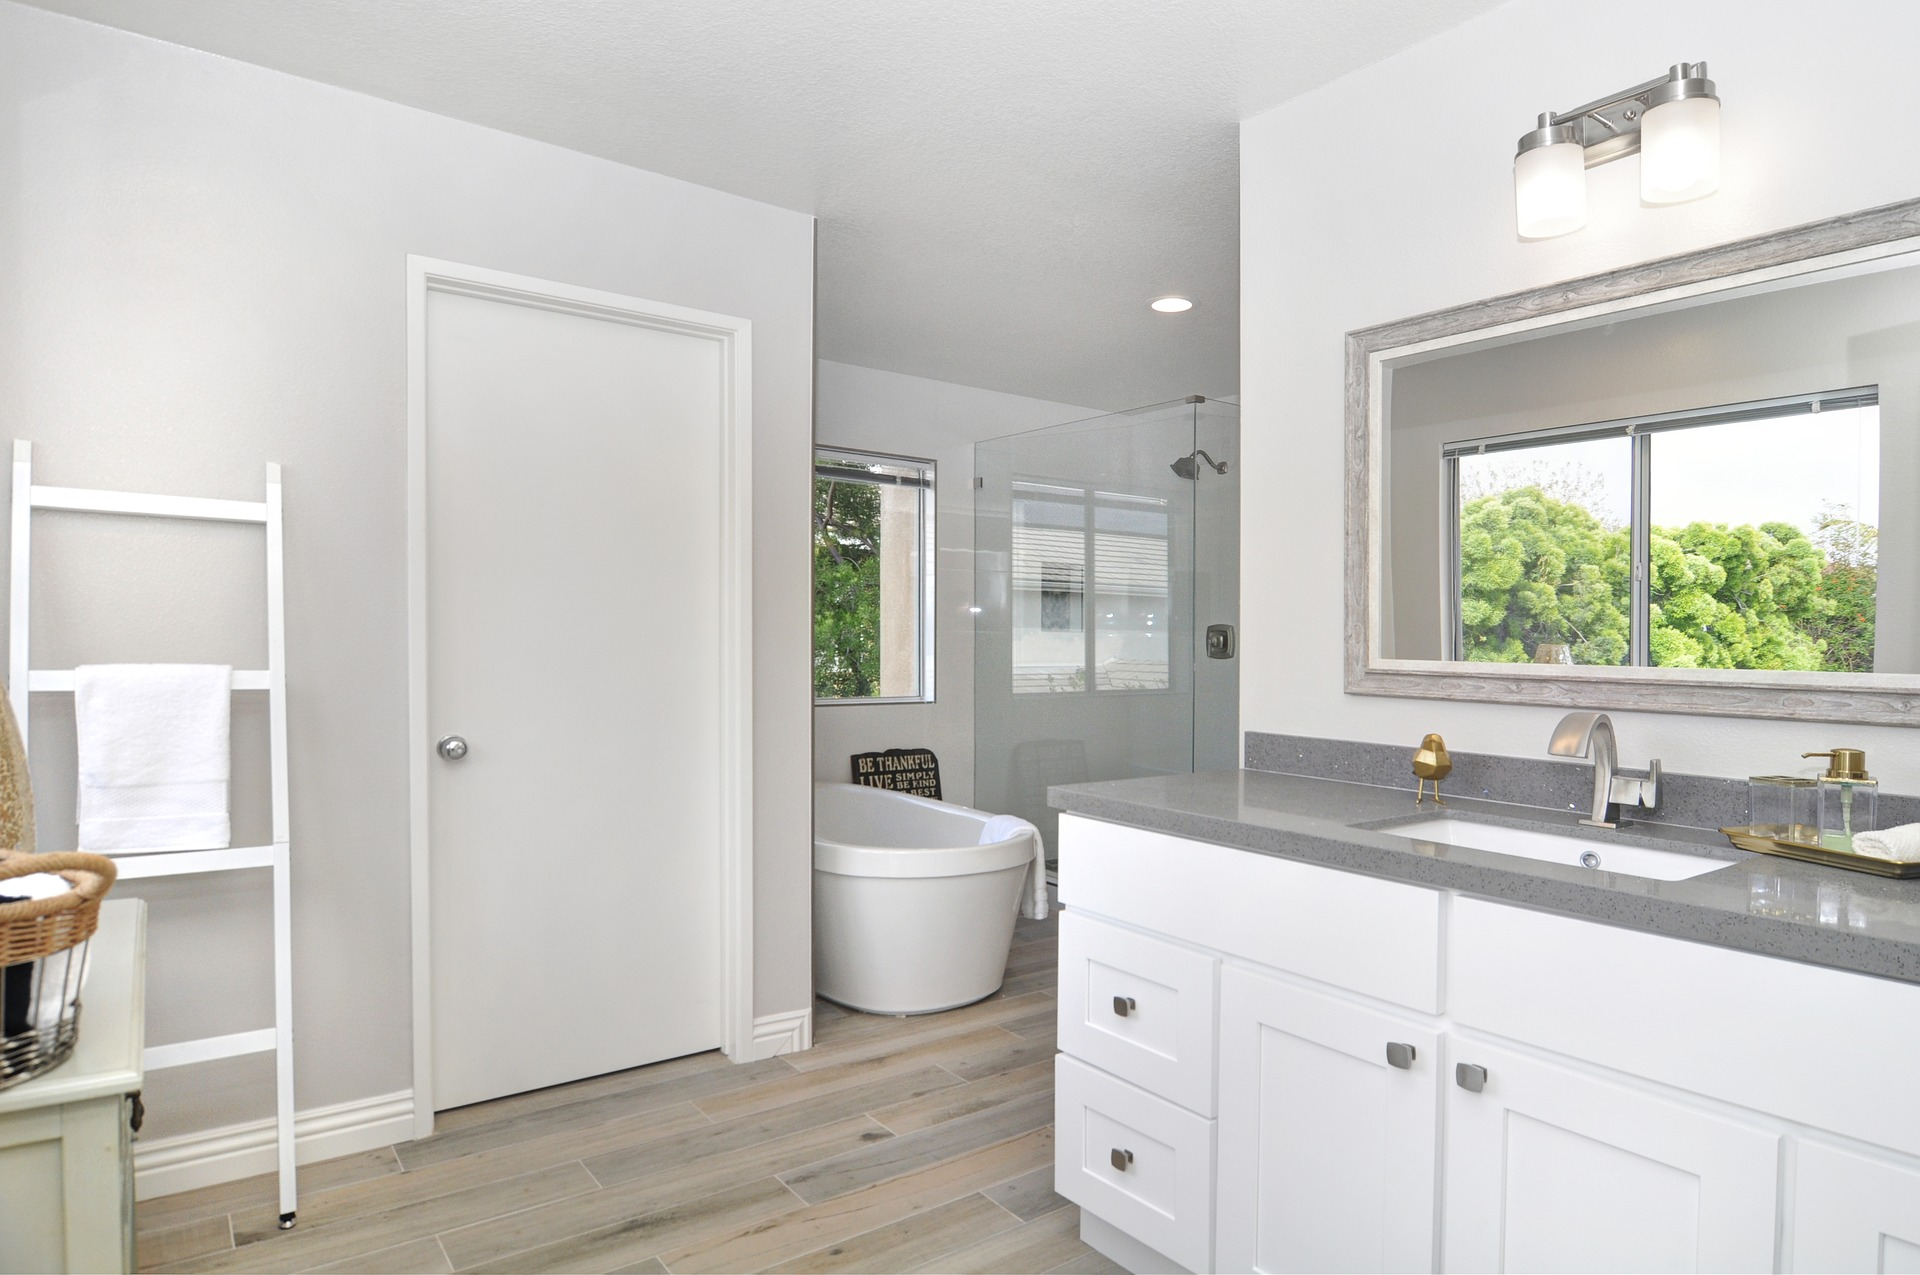 Remodeled bathroom in white and gray on the One Stop Plumbing page for Plumbing Remodeling